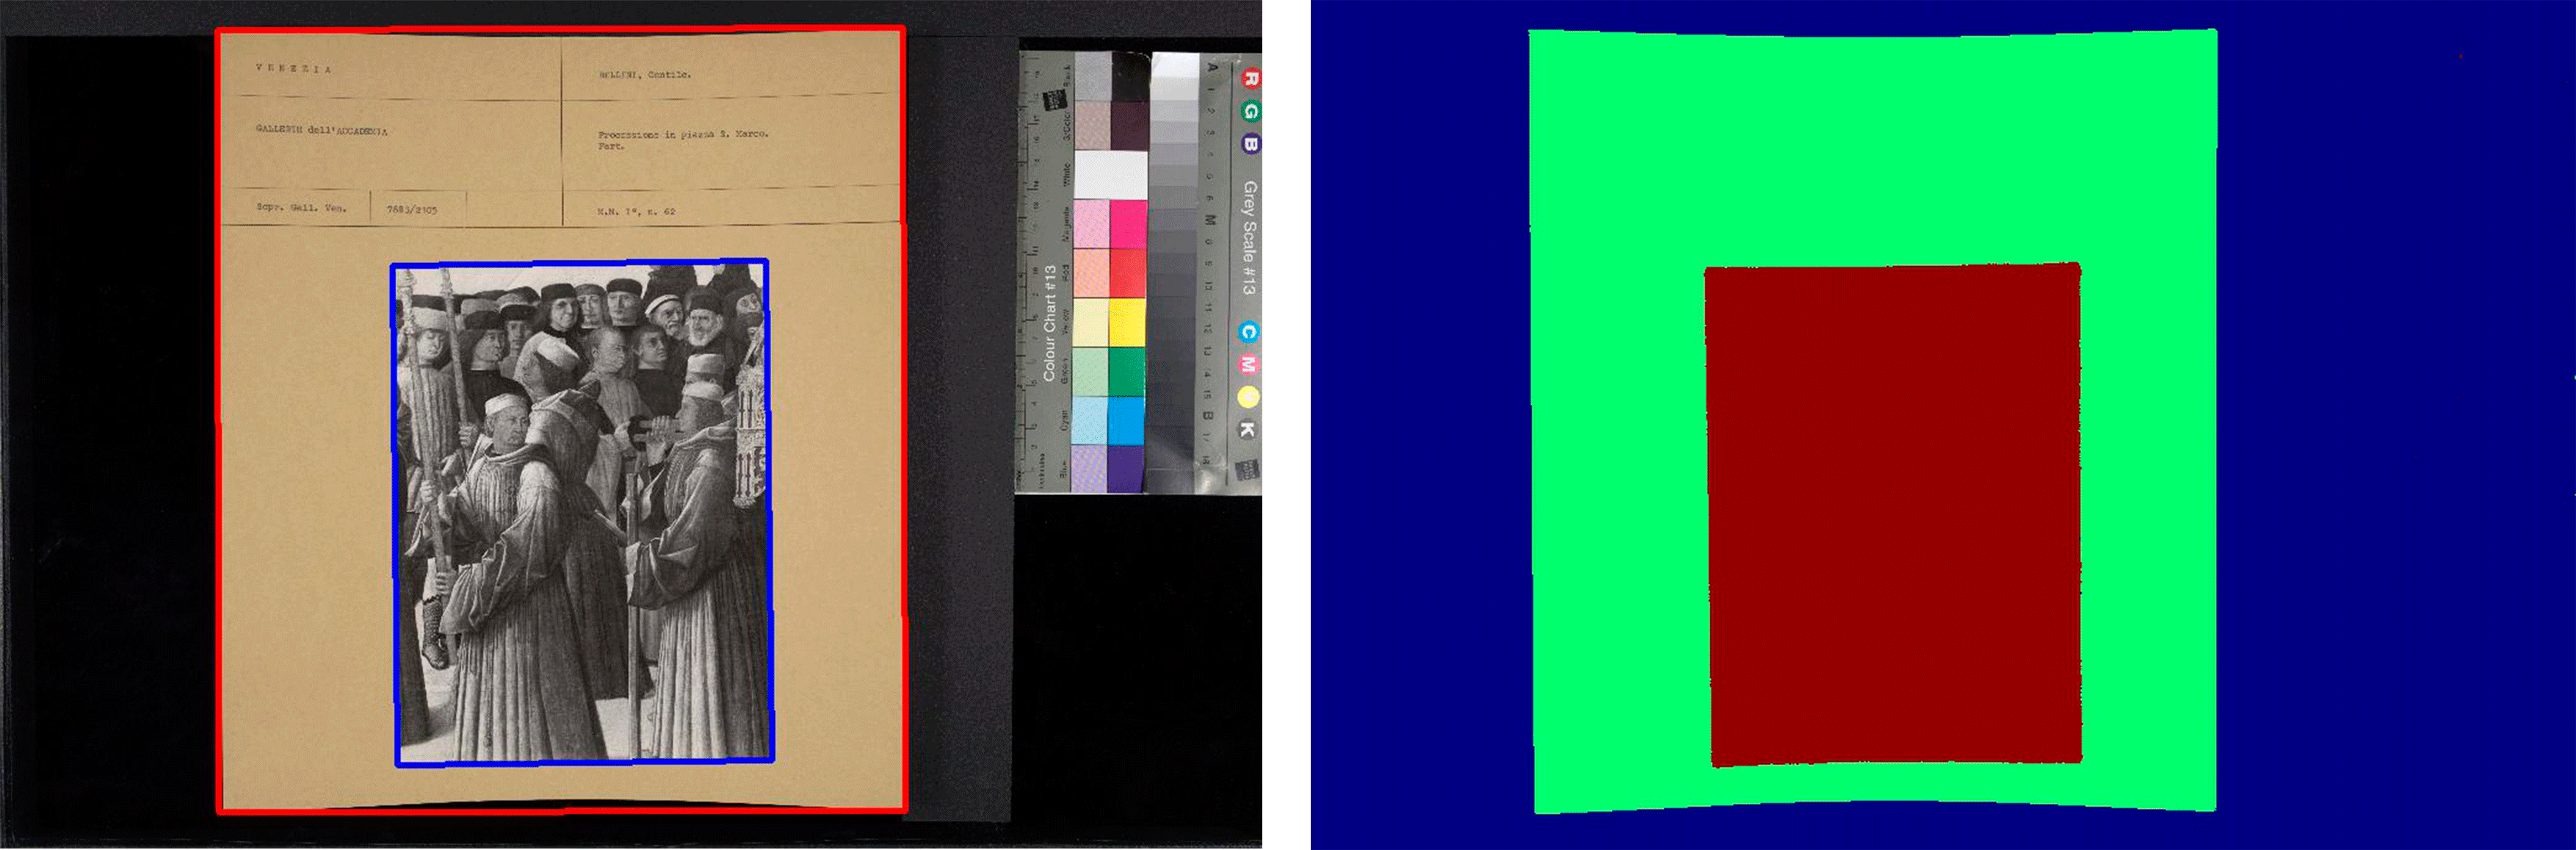 Figure Left: original scan with the extracted areas highlighted with red and blue rectangles. Right: the prediction mask generated by the neural network.